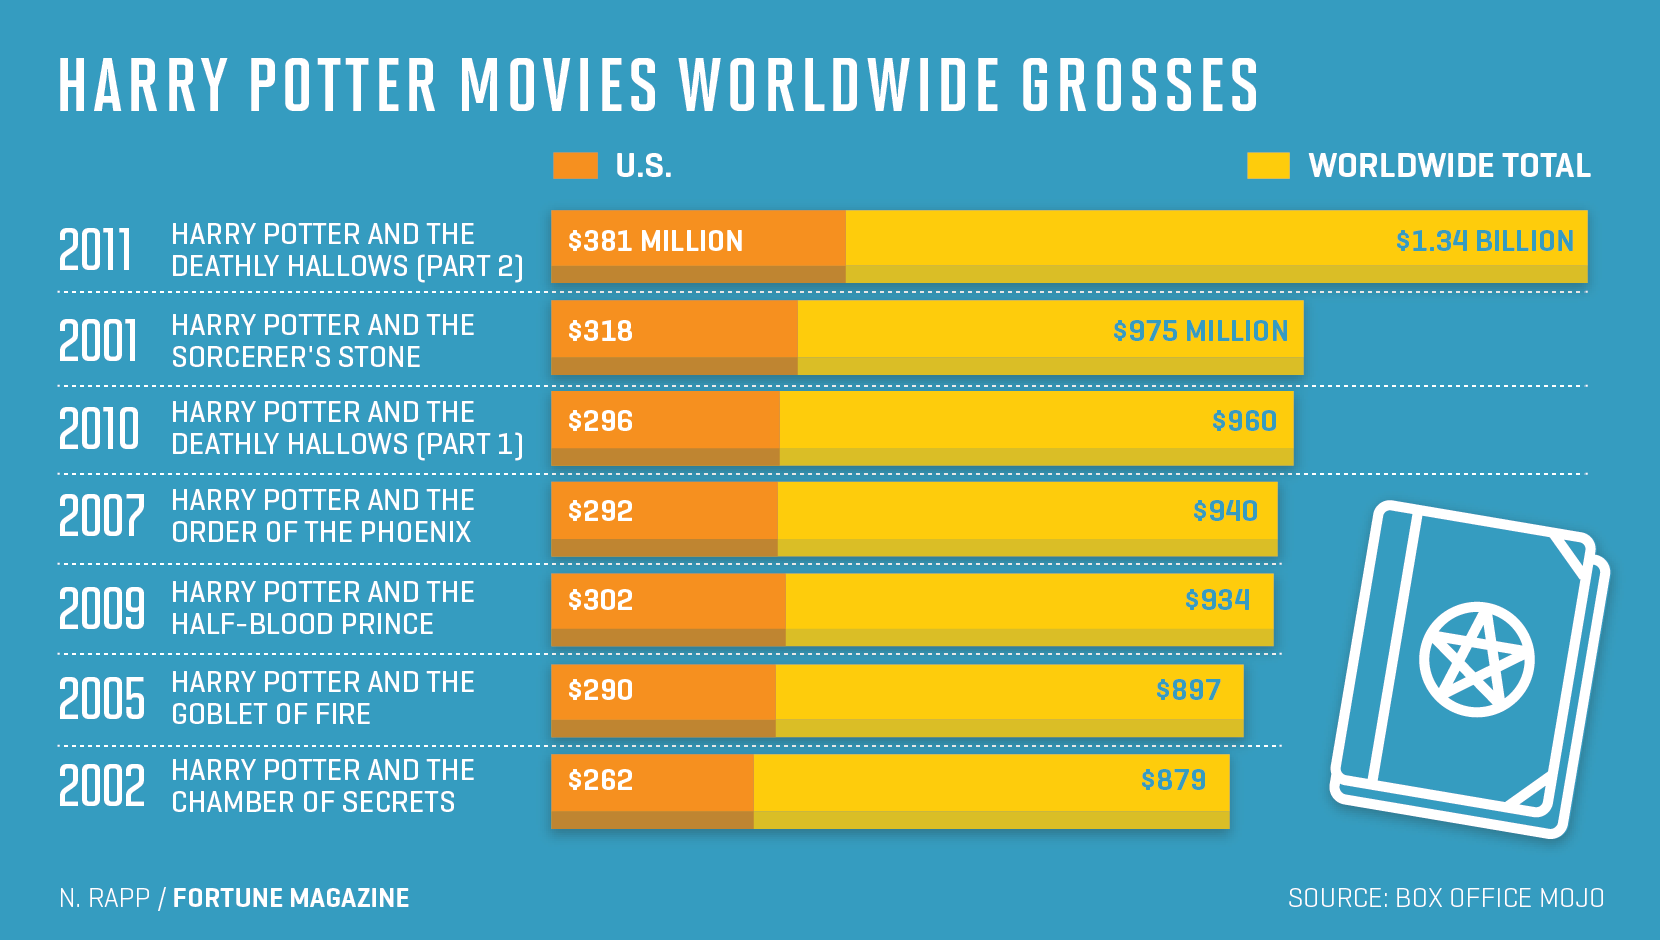 Chart shows Harry Potter movies worldwide gross